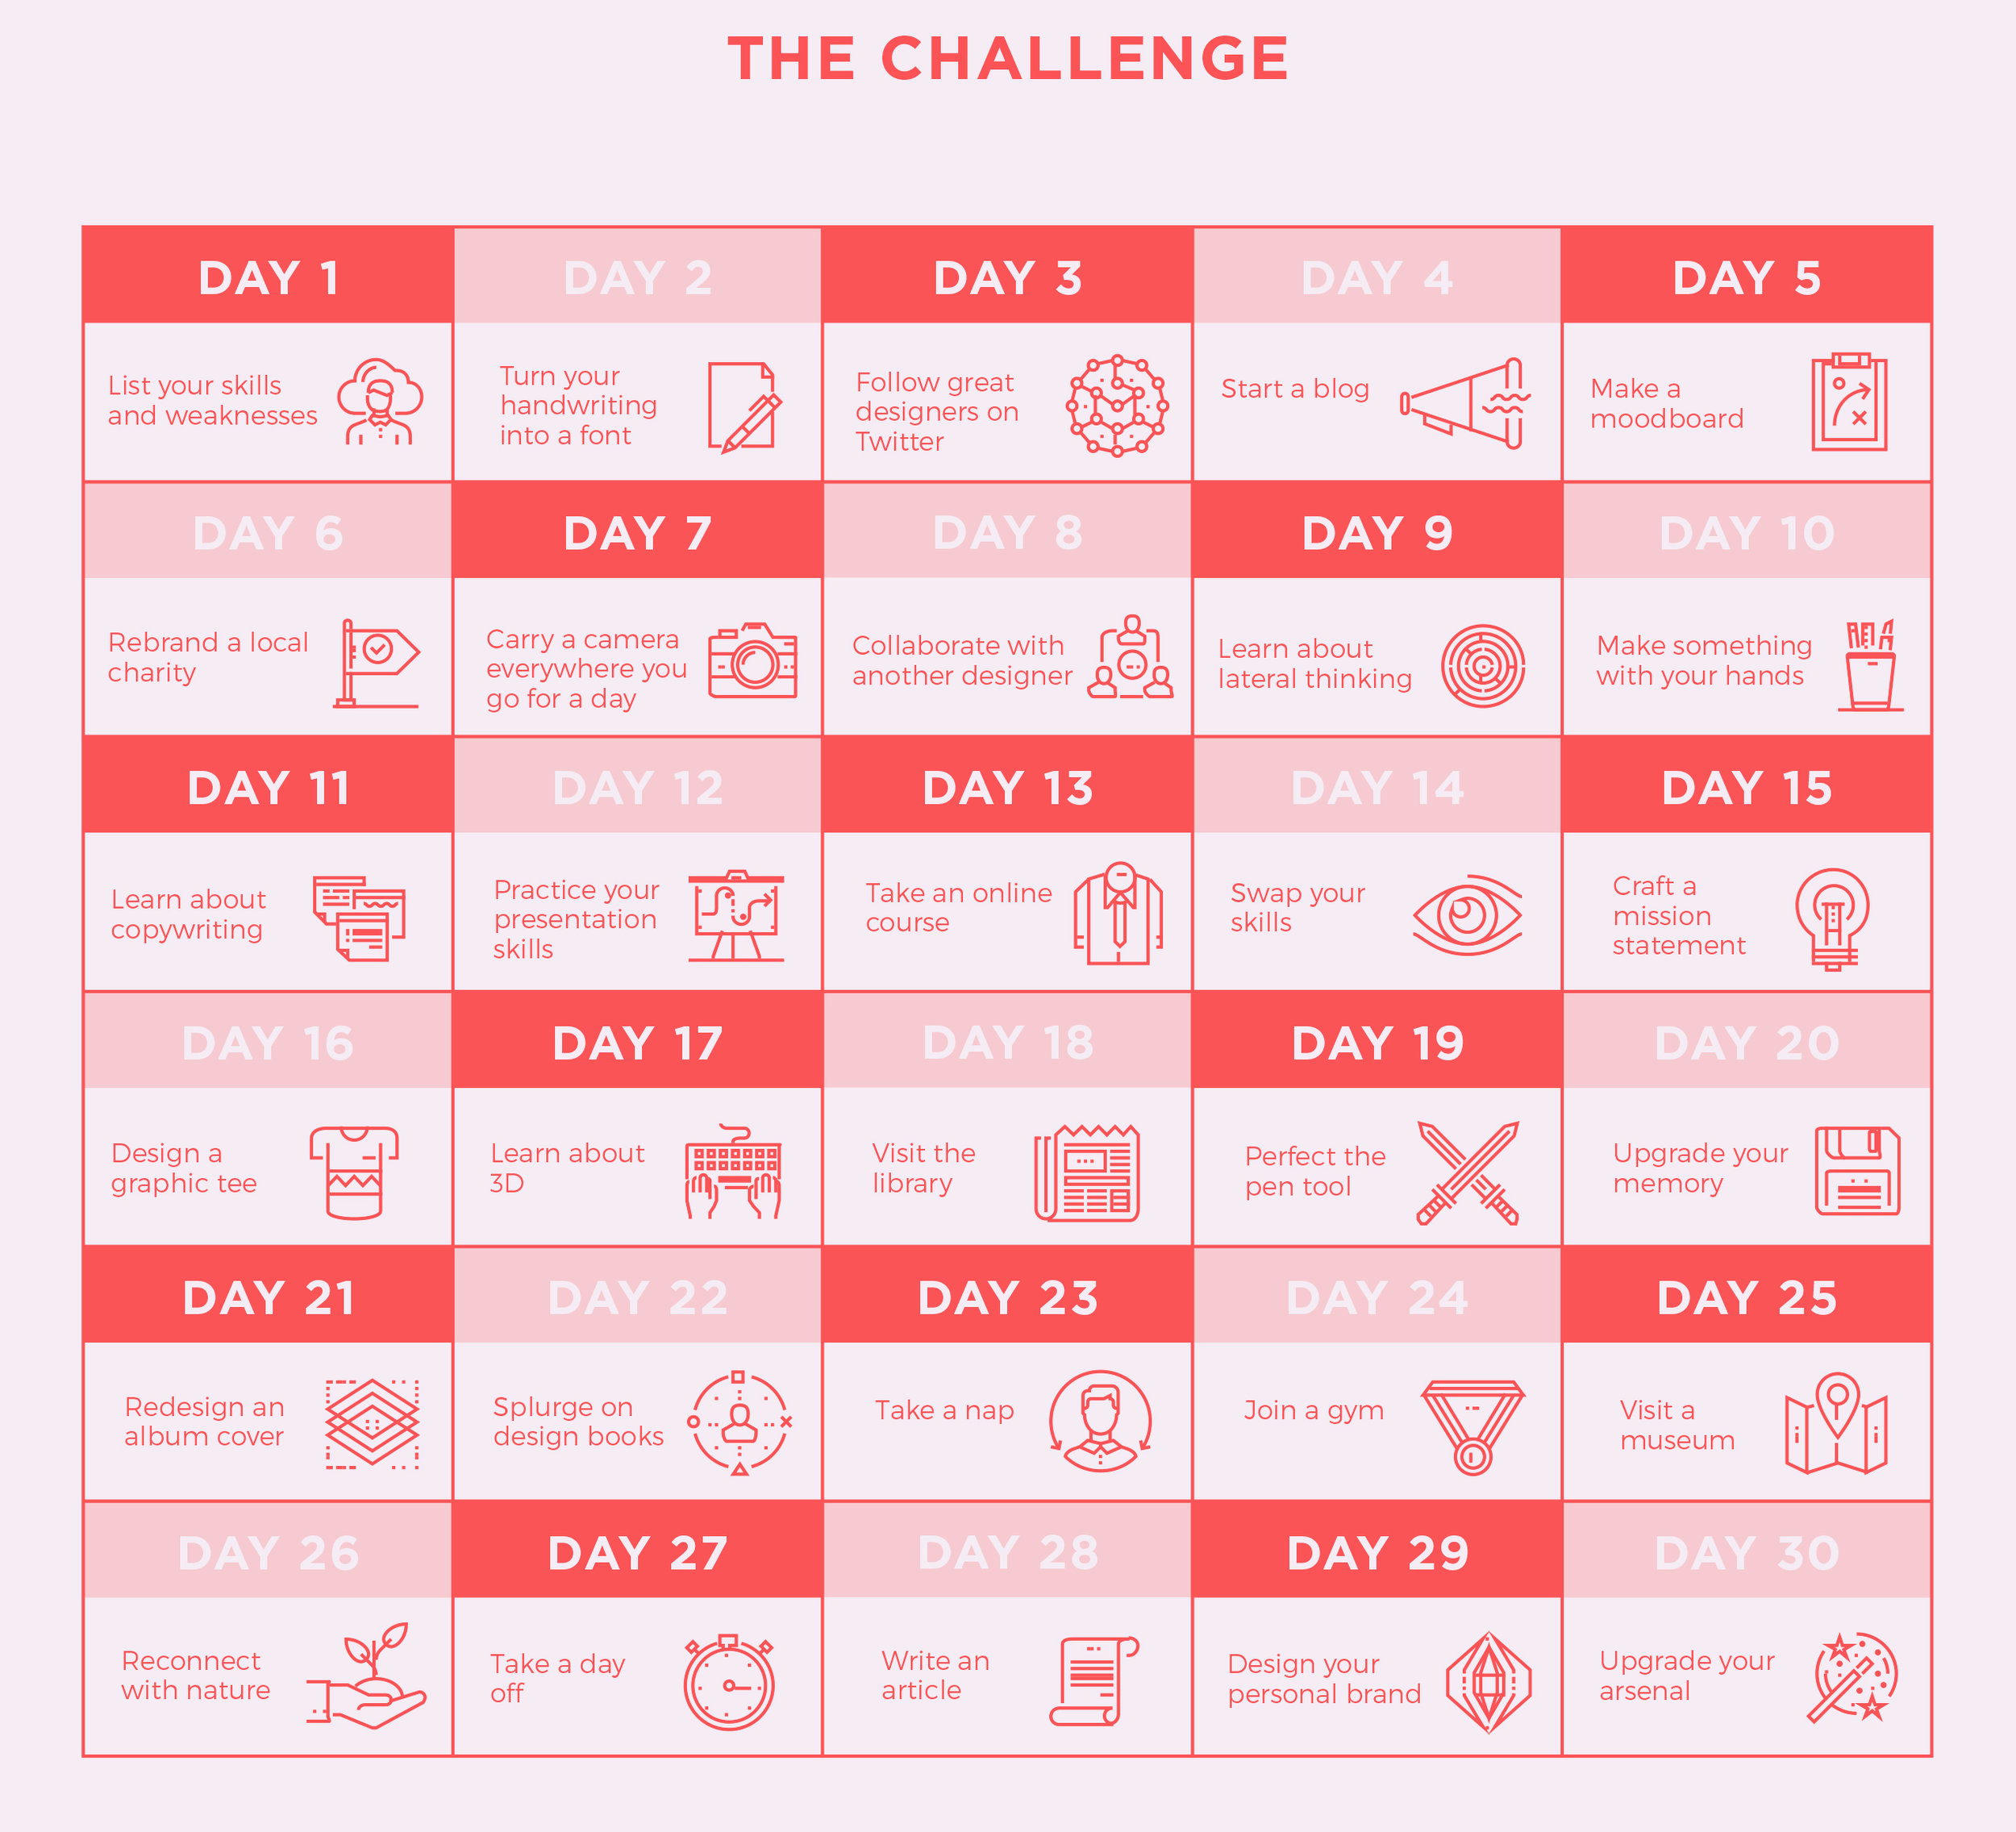 This 30 day challenge is from  Creative Market